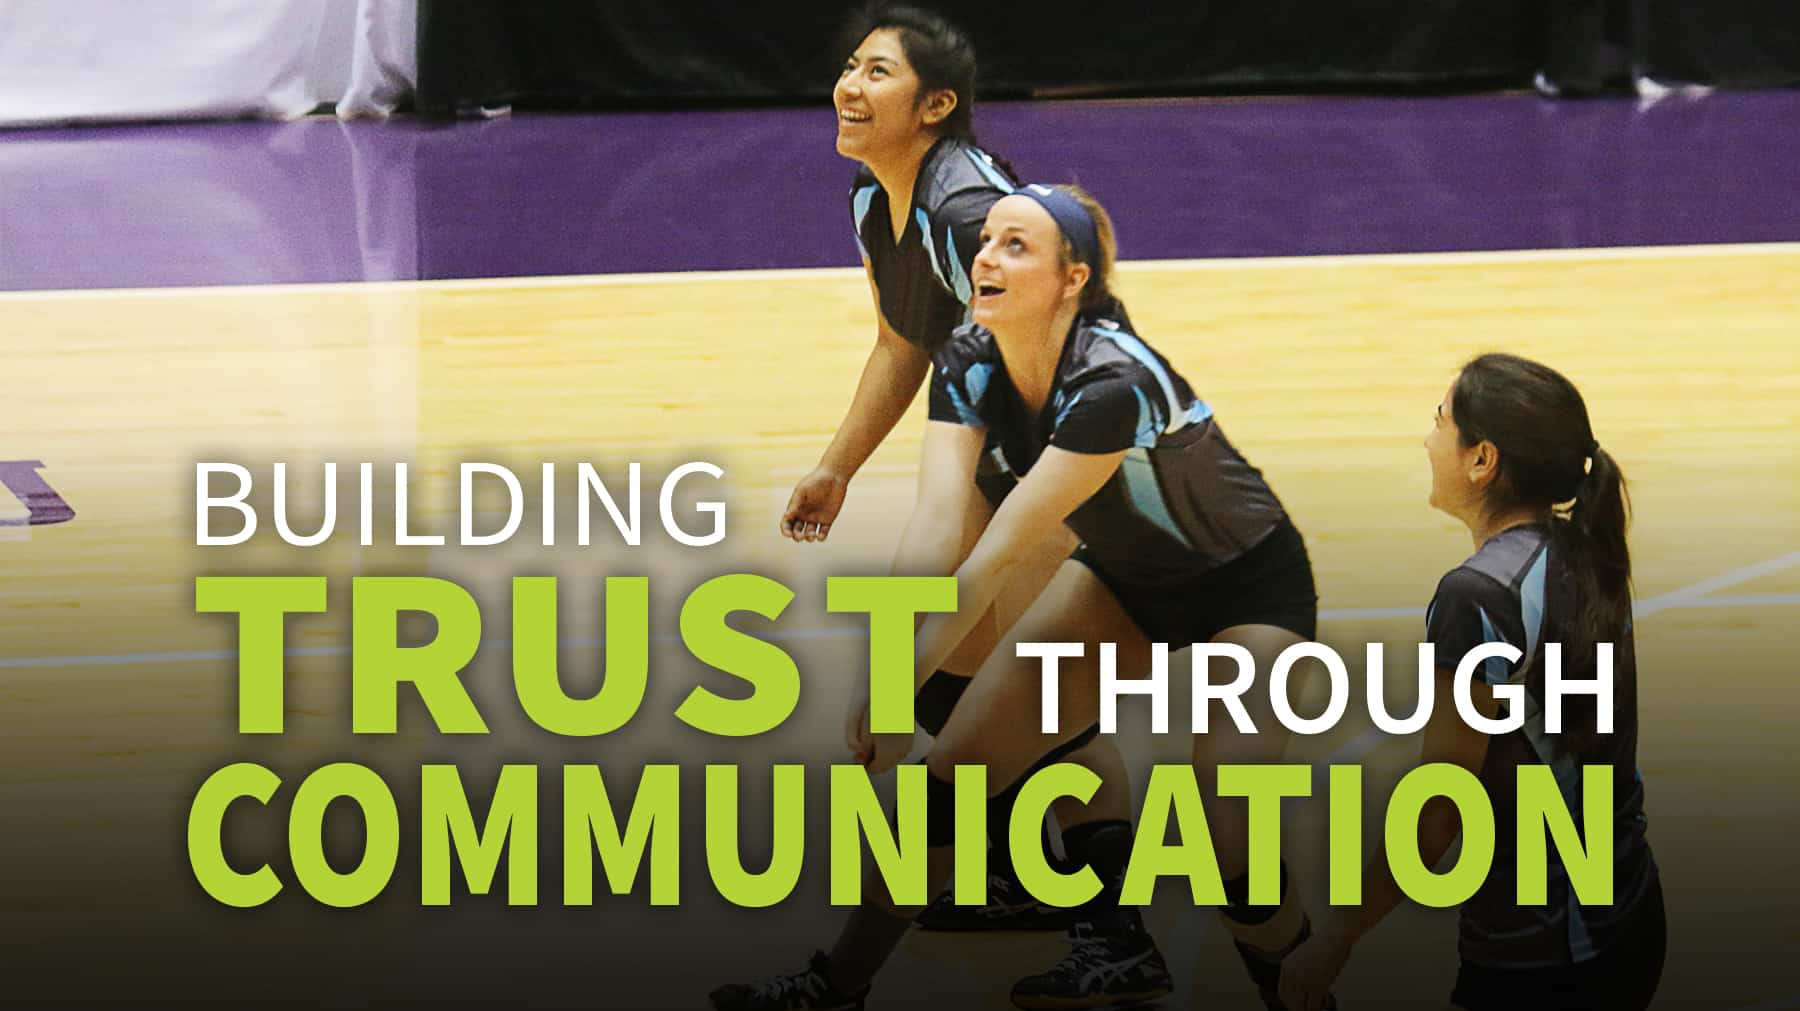 Mike Sealy How To Build Trust Through Communication